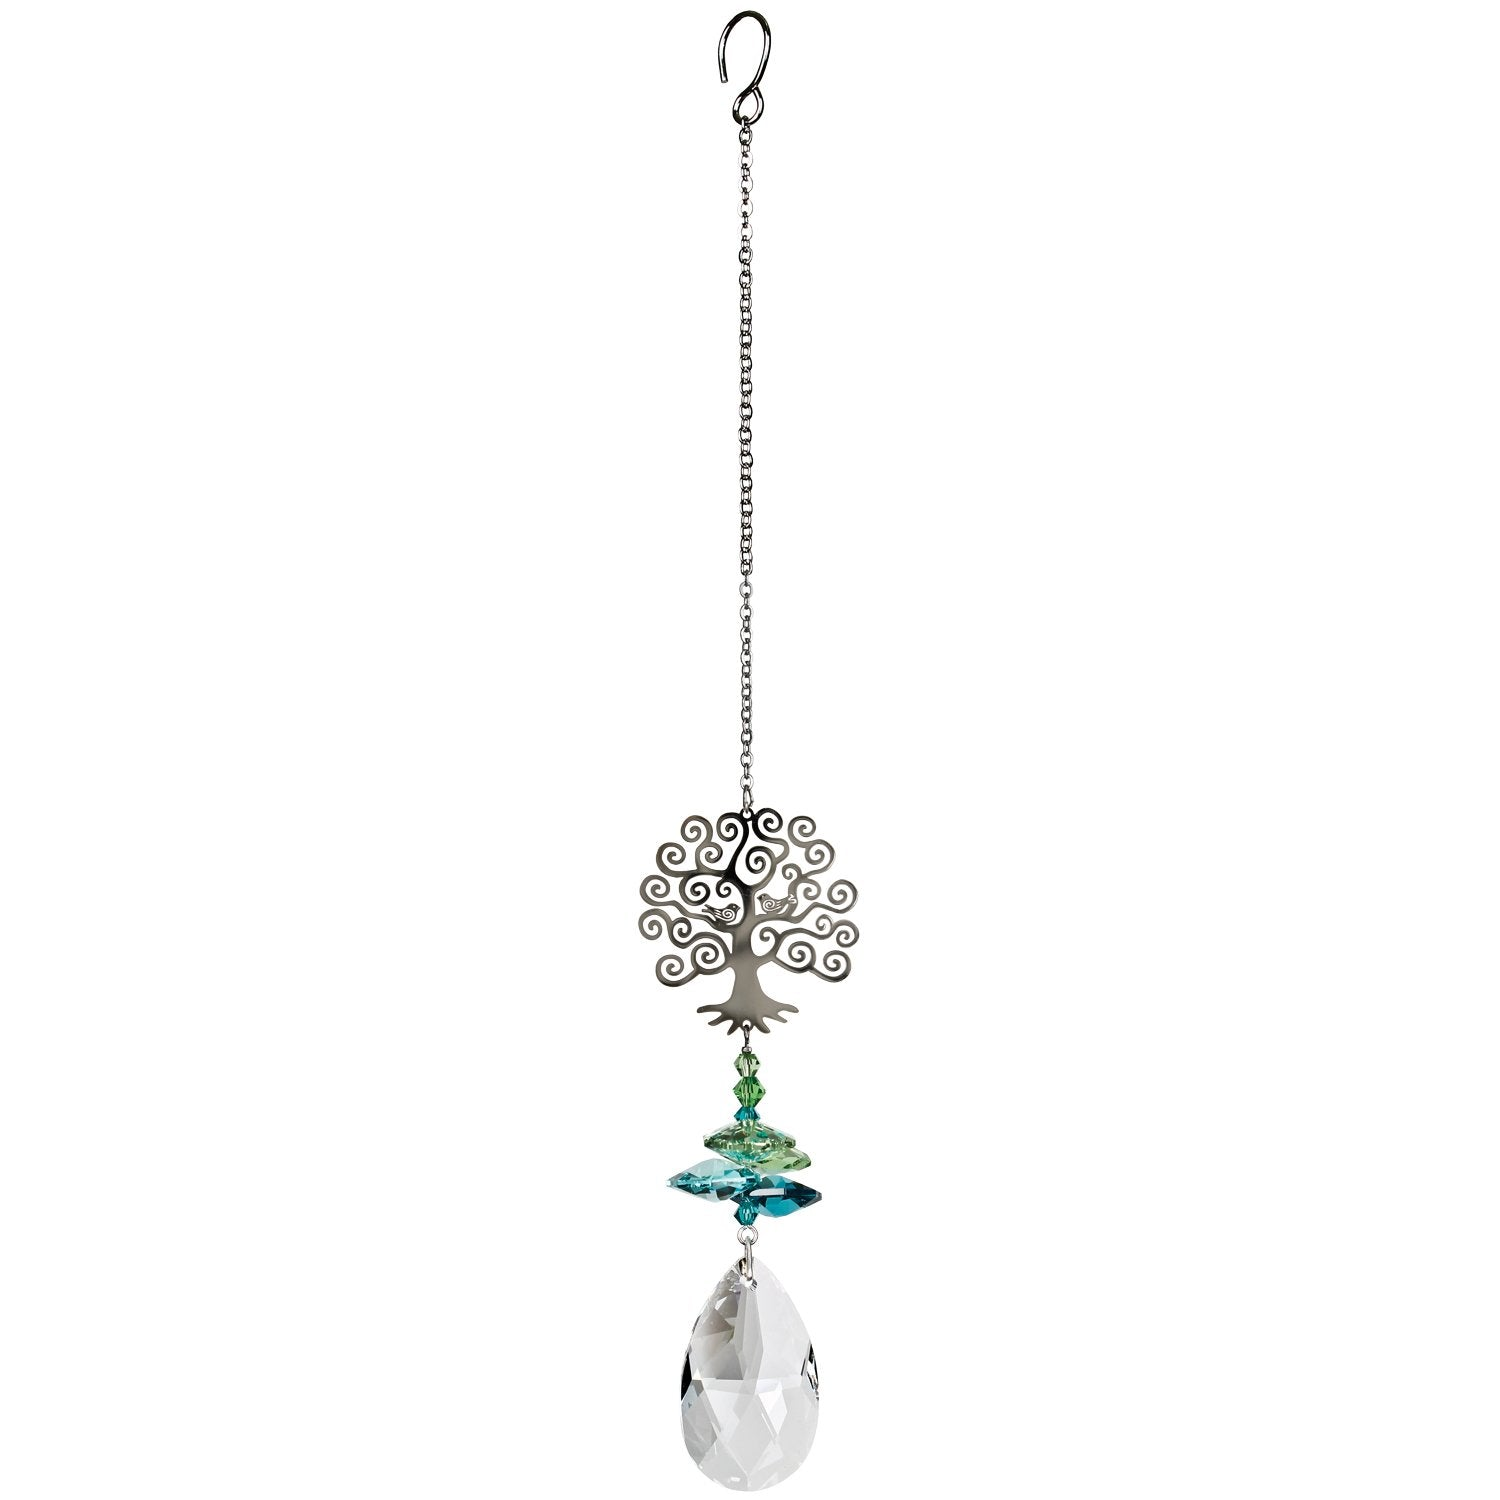 Crystal Fantasy Suncatcher - Tree of Life full product image